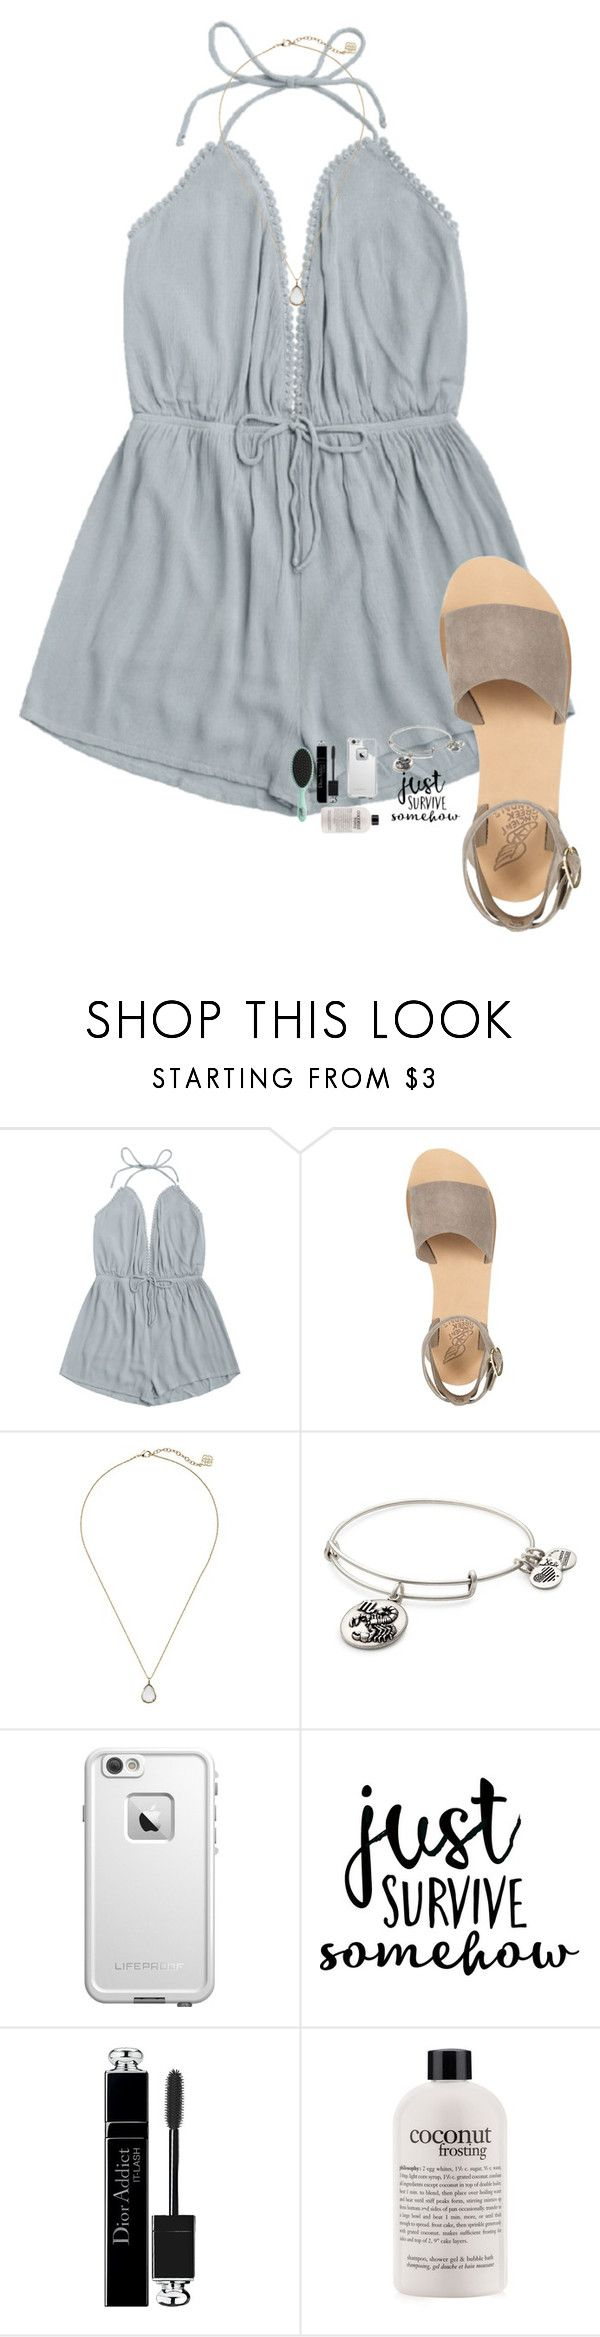 """""""Day in the d!"""" by kolbee24 ❤ liked on Polyvore featuring beauty, Ancient Greek Sandals, Kendra Scott, Alex and Ani, LifeProof, Christian Dior, philosophy and Topshop"""